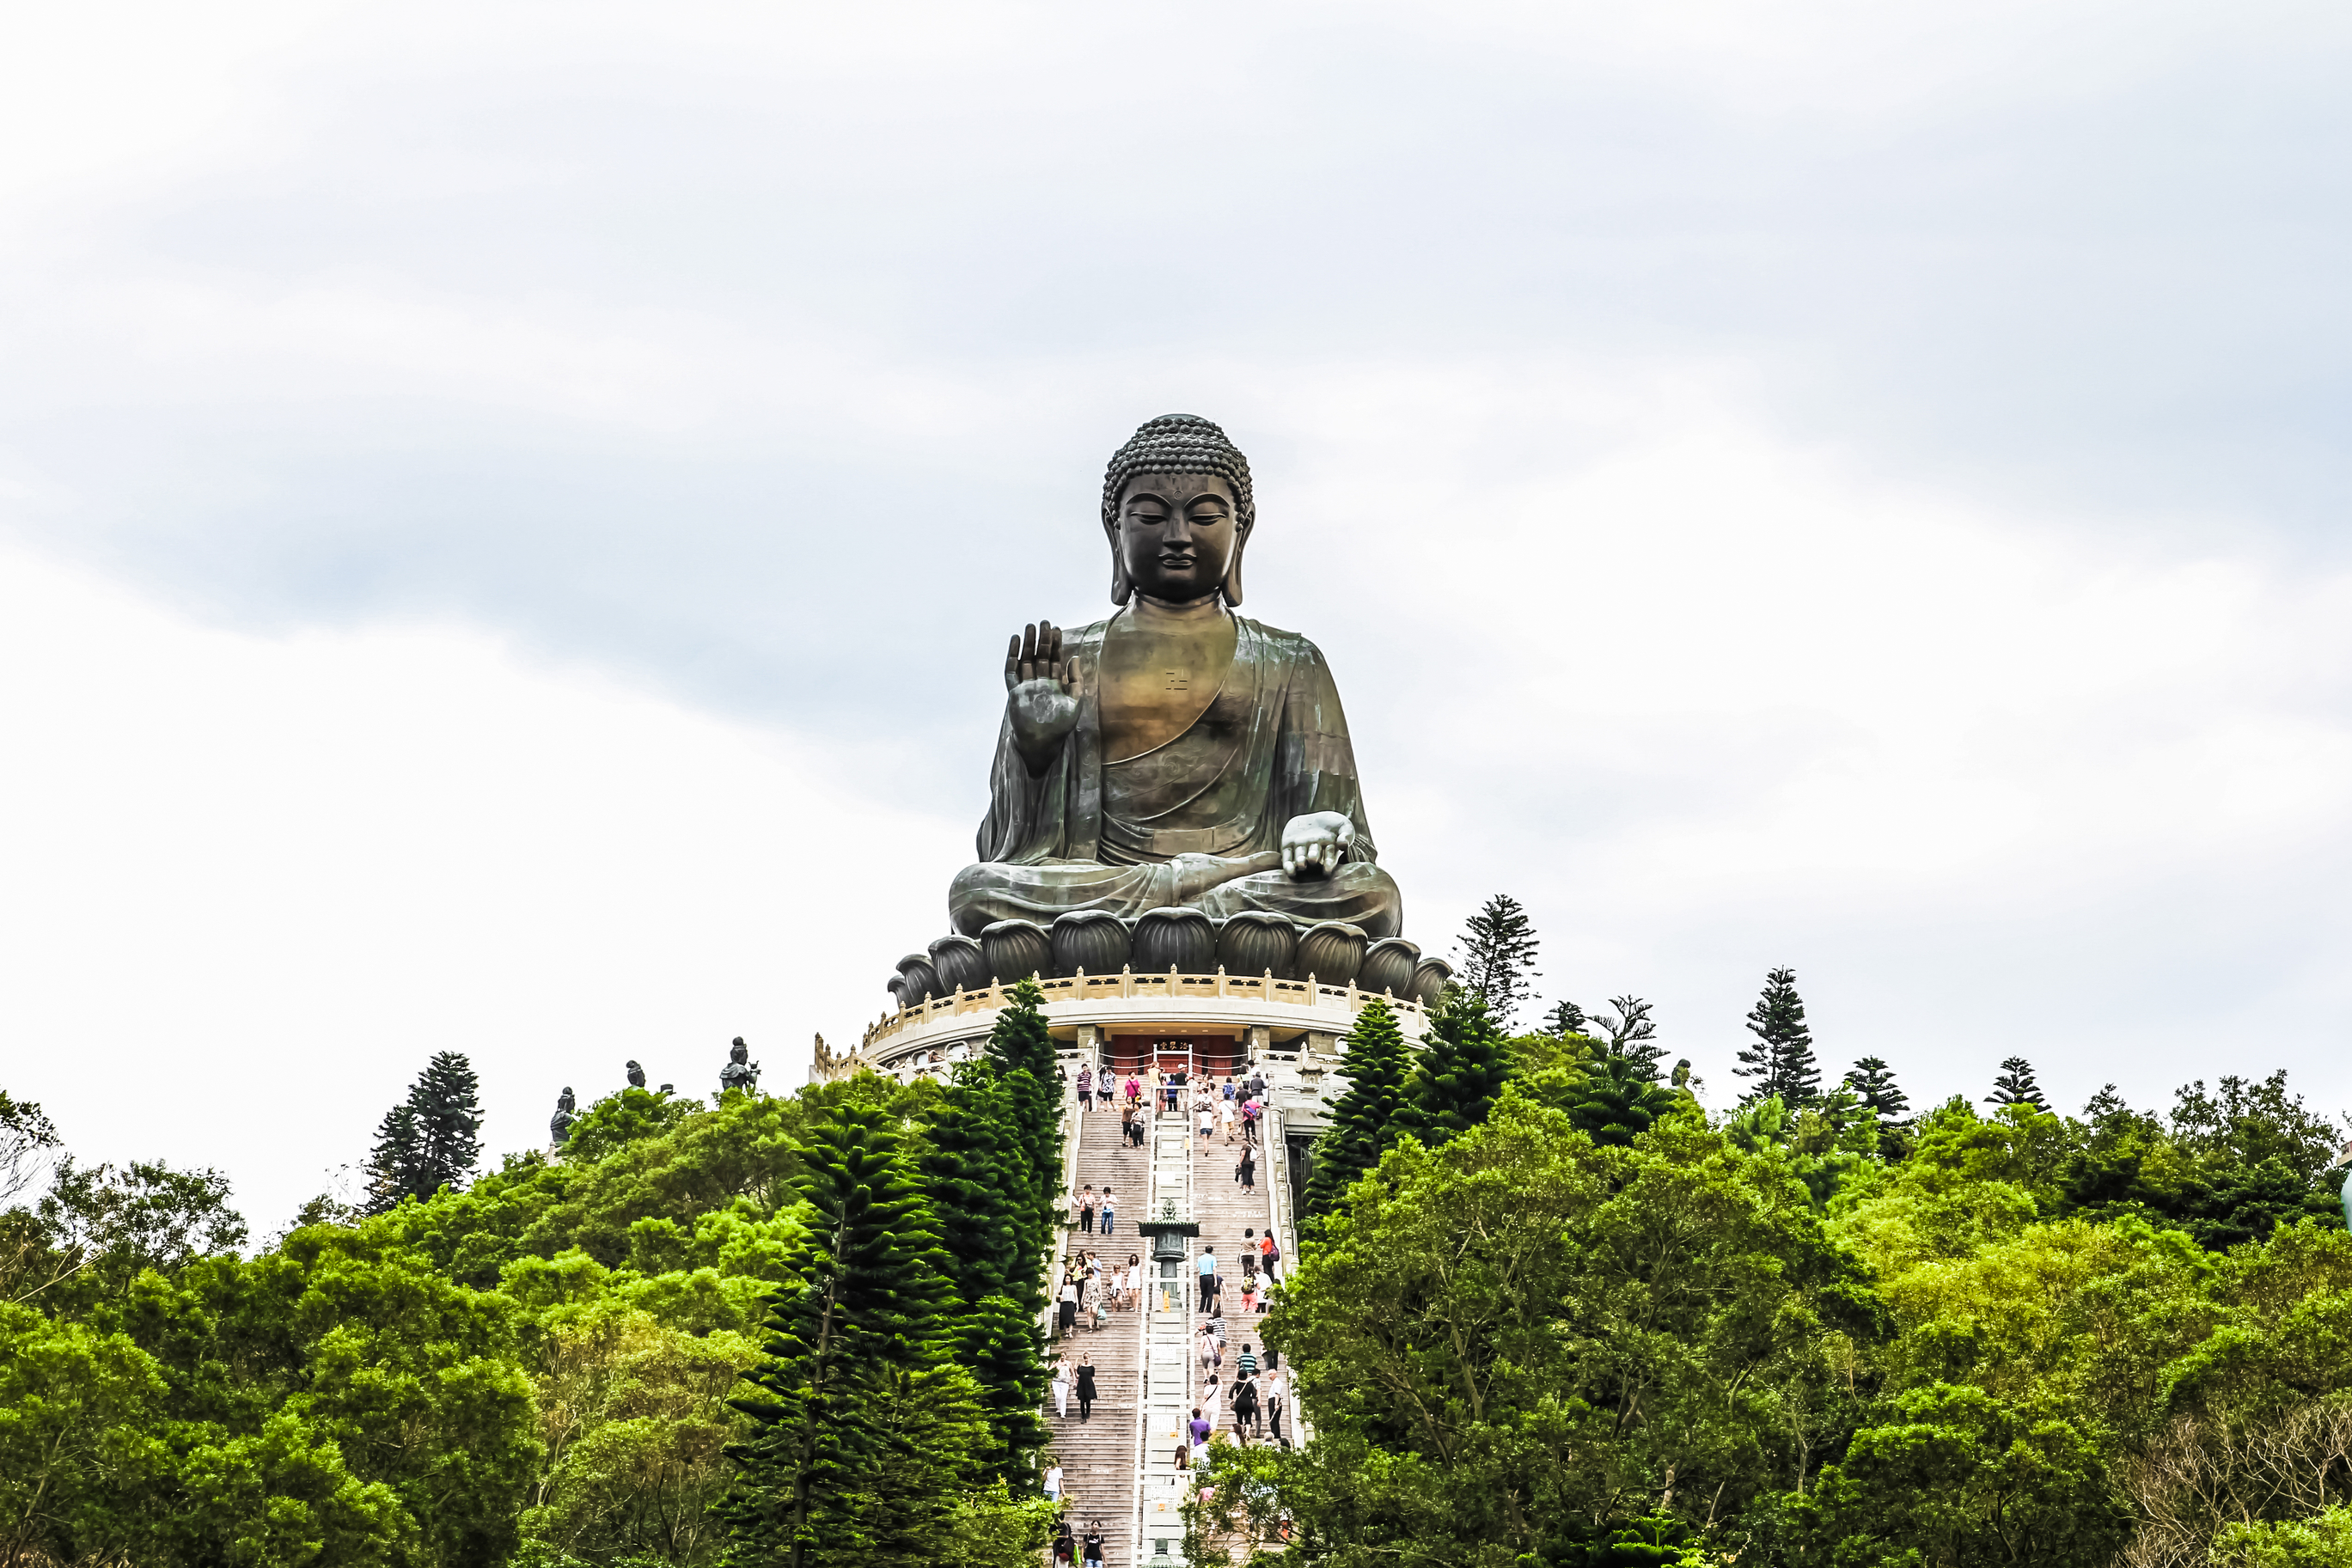 The Big Buddha (Tian Tan Buddha)